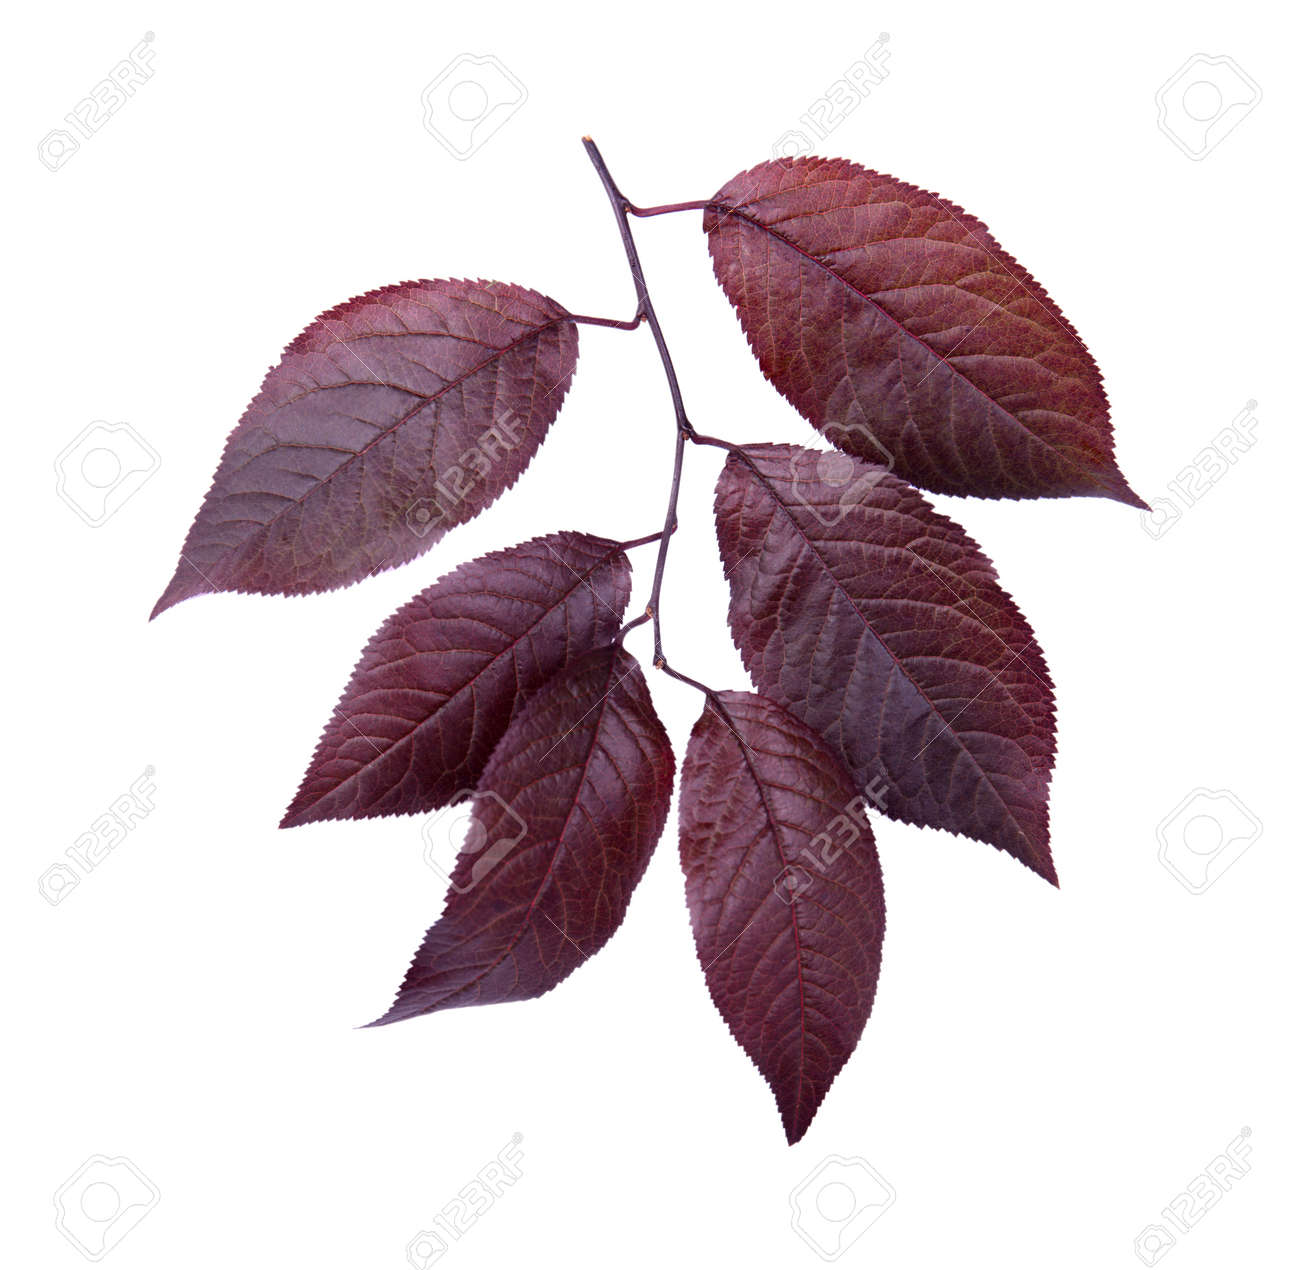 Organic Fresh And Dark Red Autumn Leaves Isolated On A White